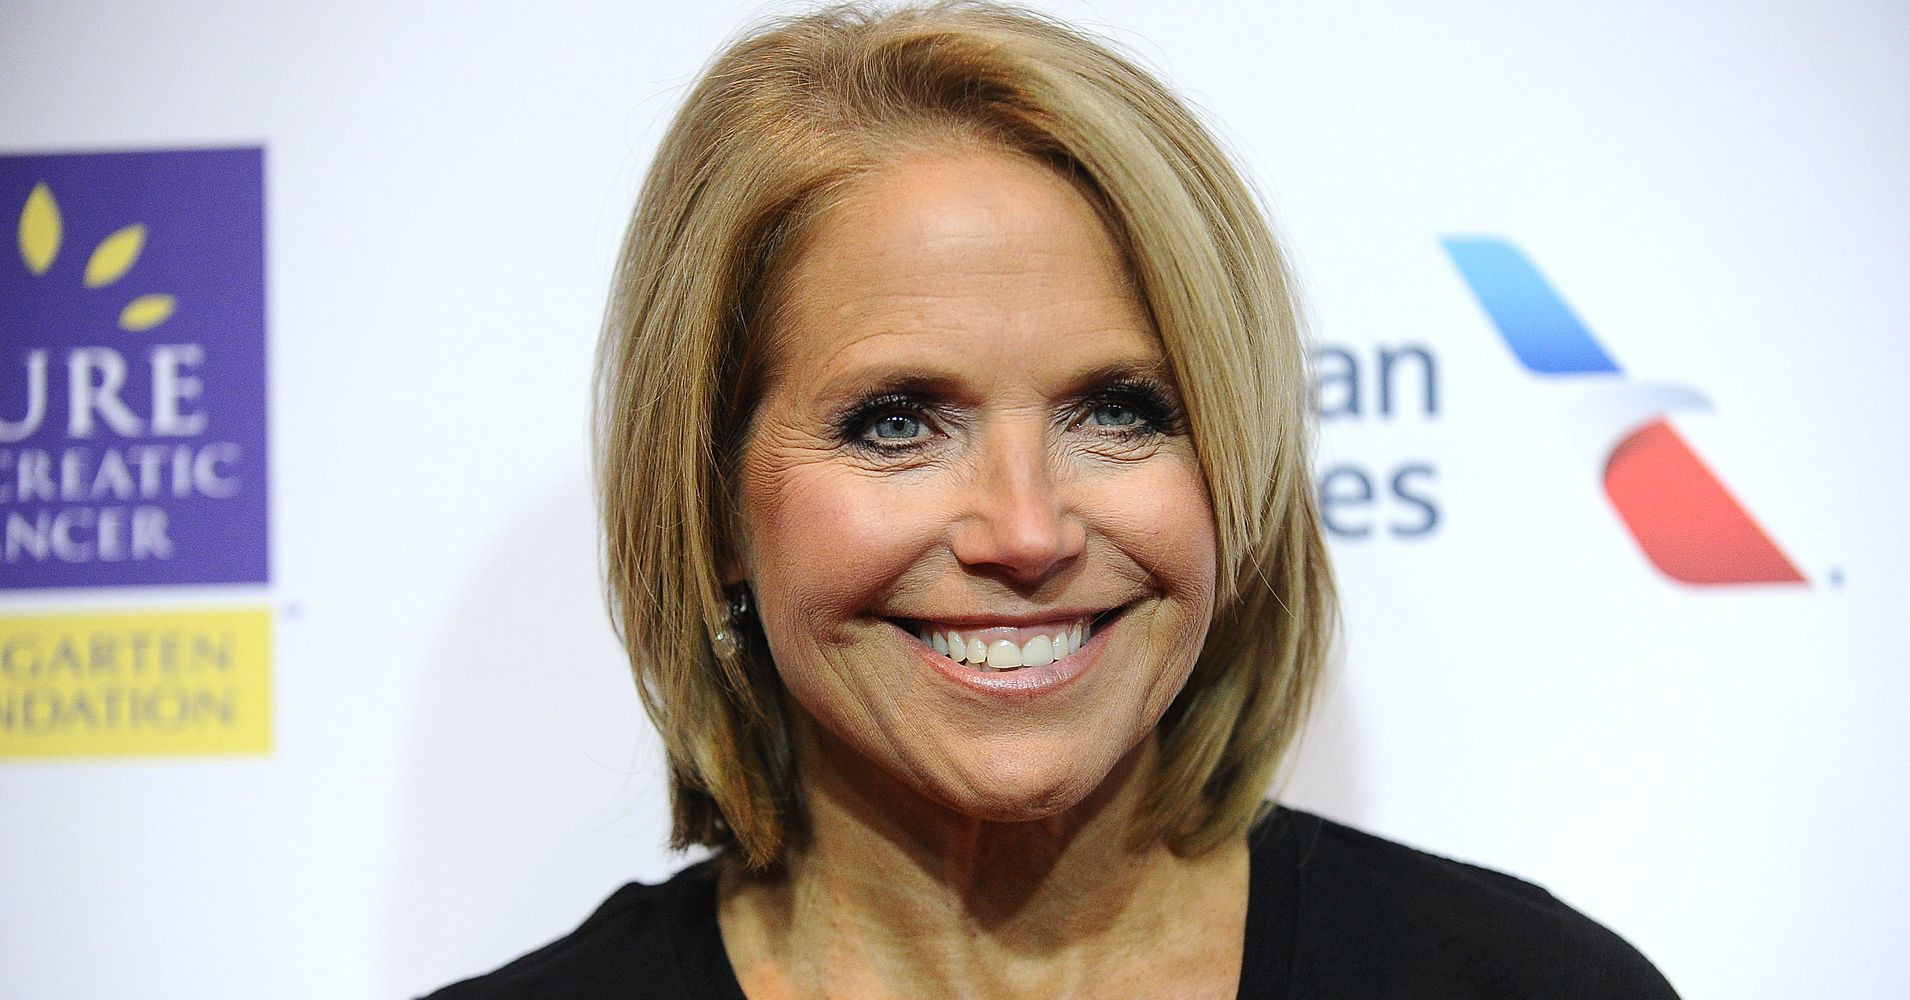 Katie couric is an asshole